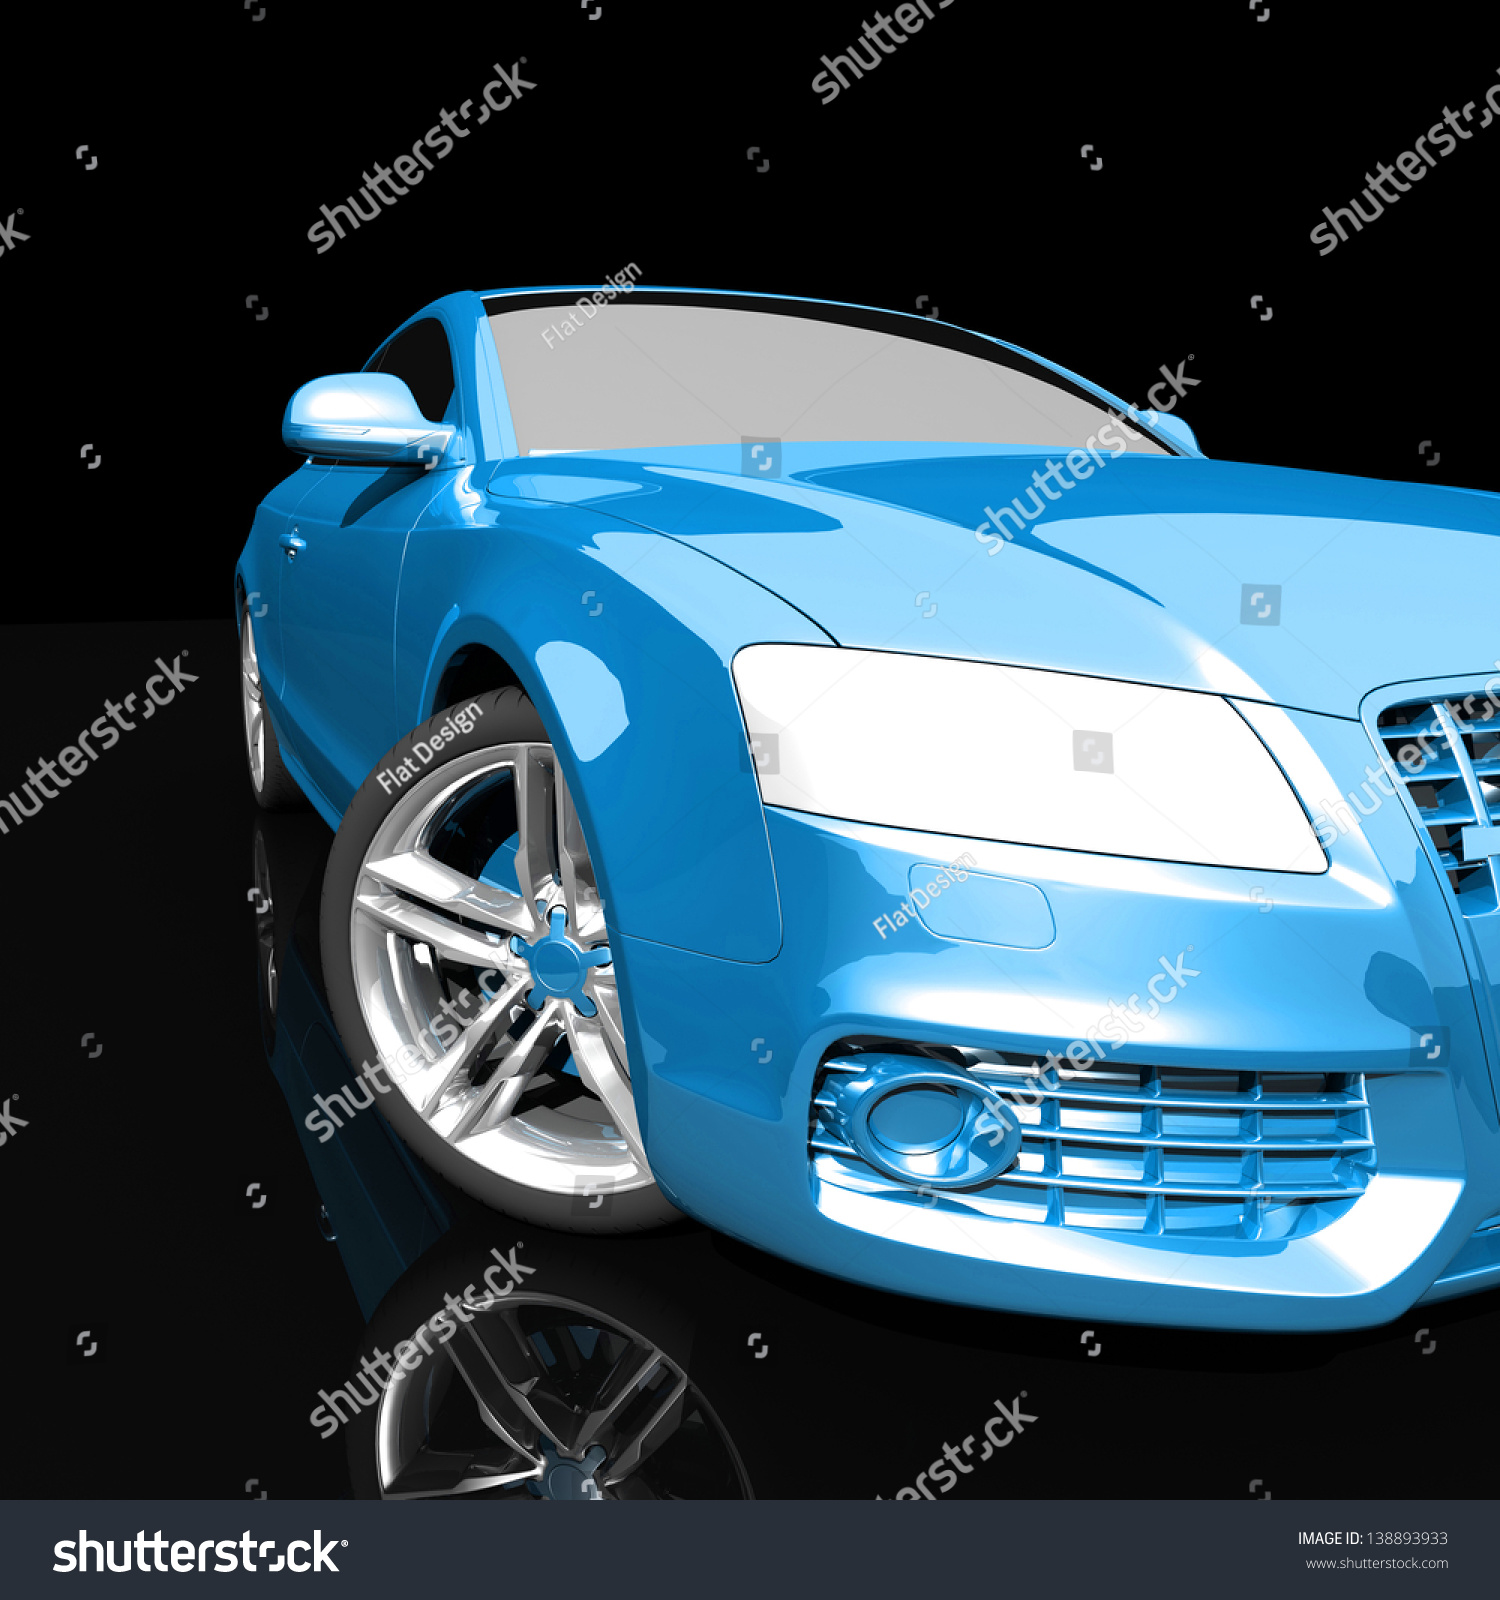 Dark blue car paint colors - Car Blue Color On A Dark Background With Shiny Paint And Lights On Design